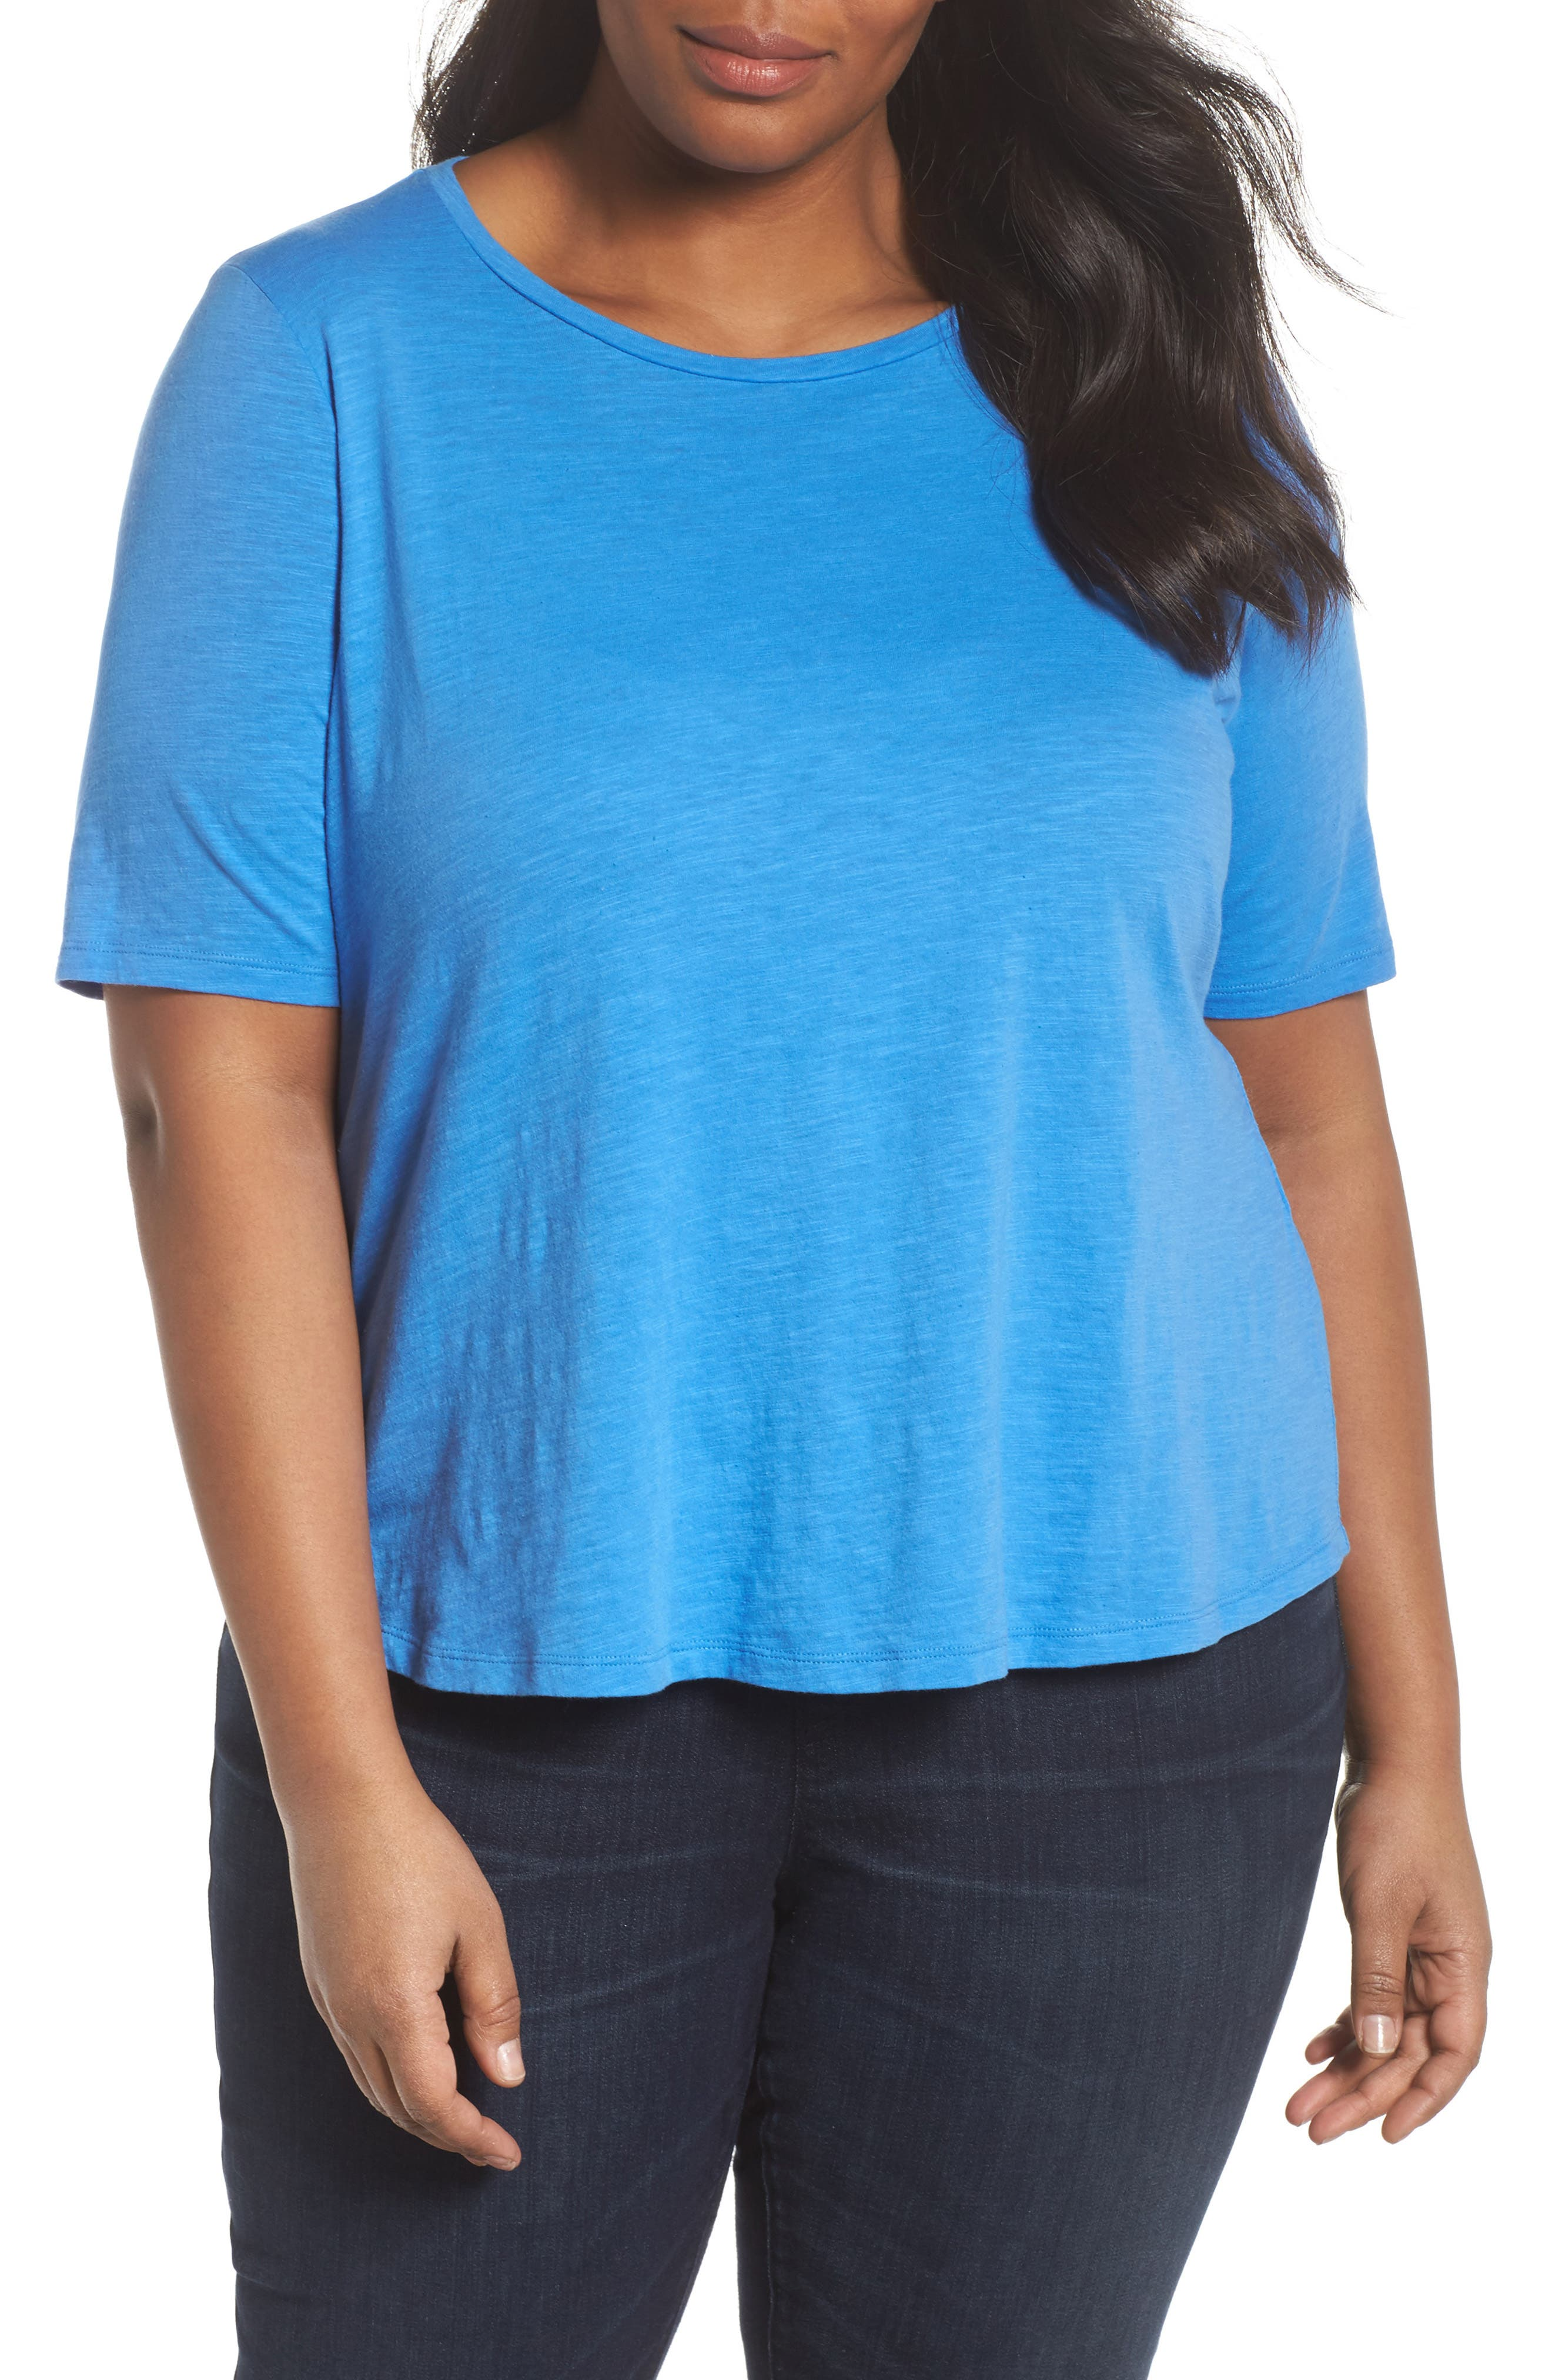 Alternate Image 1 Selected - Eileen Fisher Crewneck Tee (Plus Size)